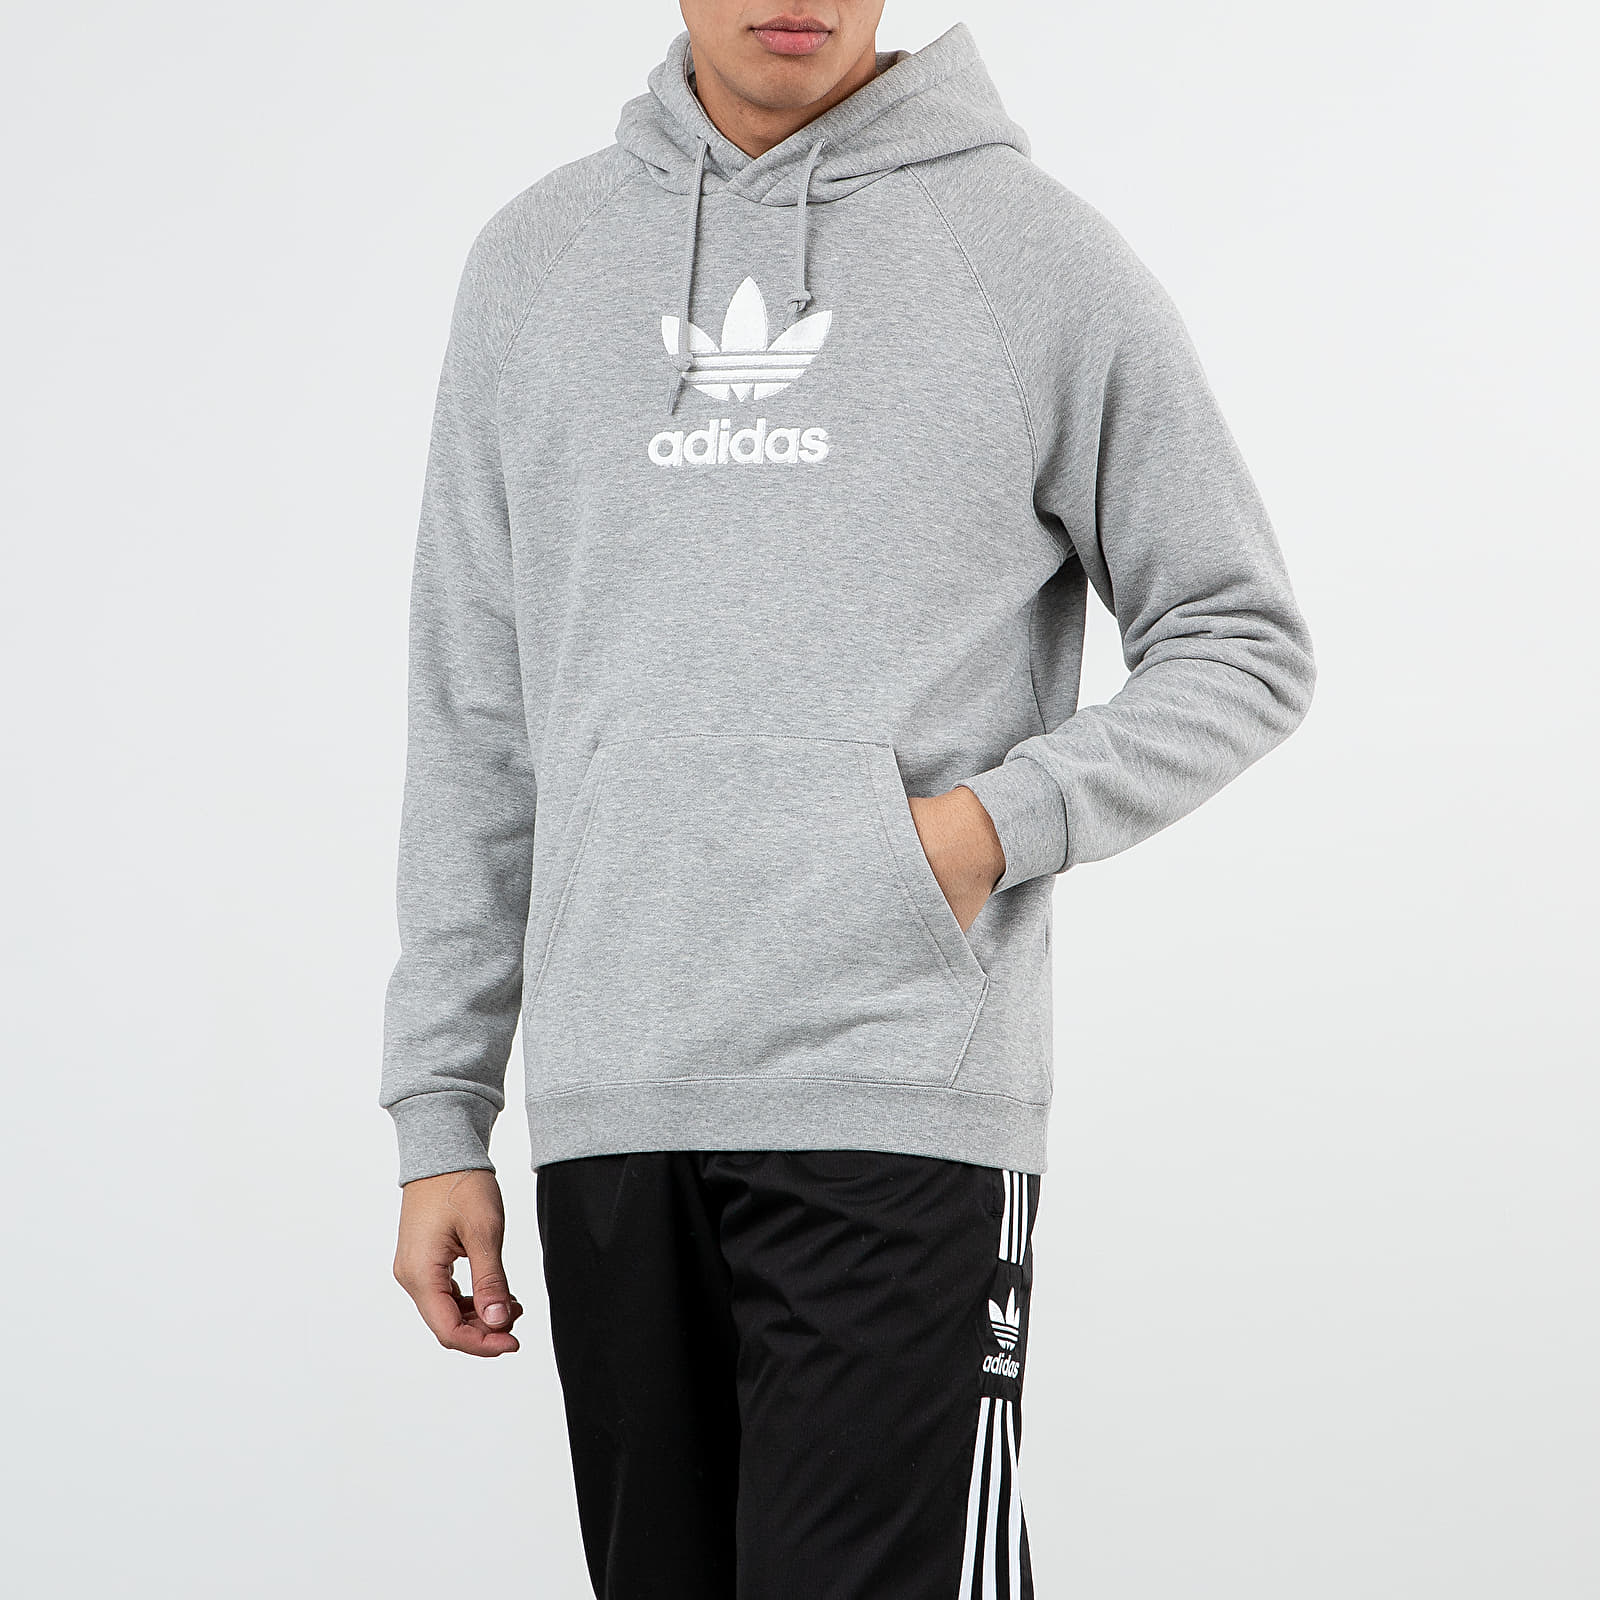 Sweatshirts adidas Adicolor Premium Hoodie Medium Grey Heather